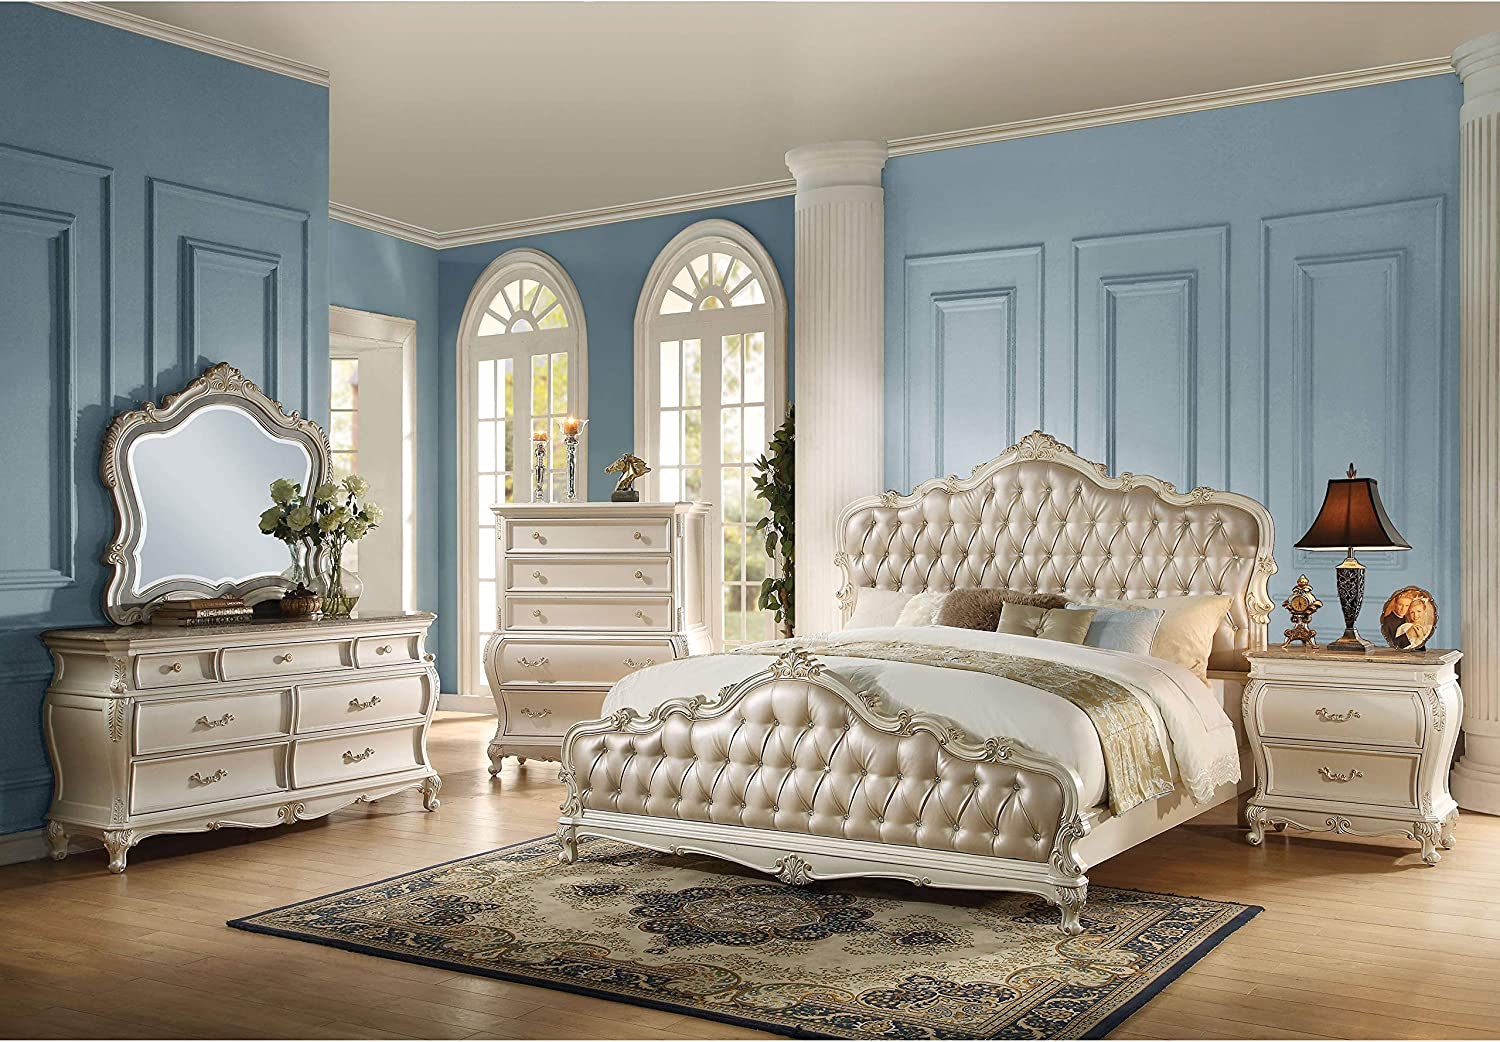 Acme Furniture Chantelle 4-Piece Bedroom Set, Rose Gold PU Leather with Pearl White Finish Eastern King